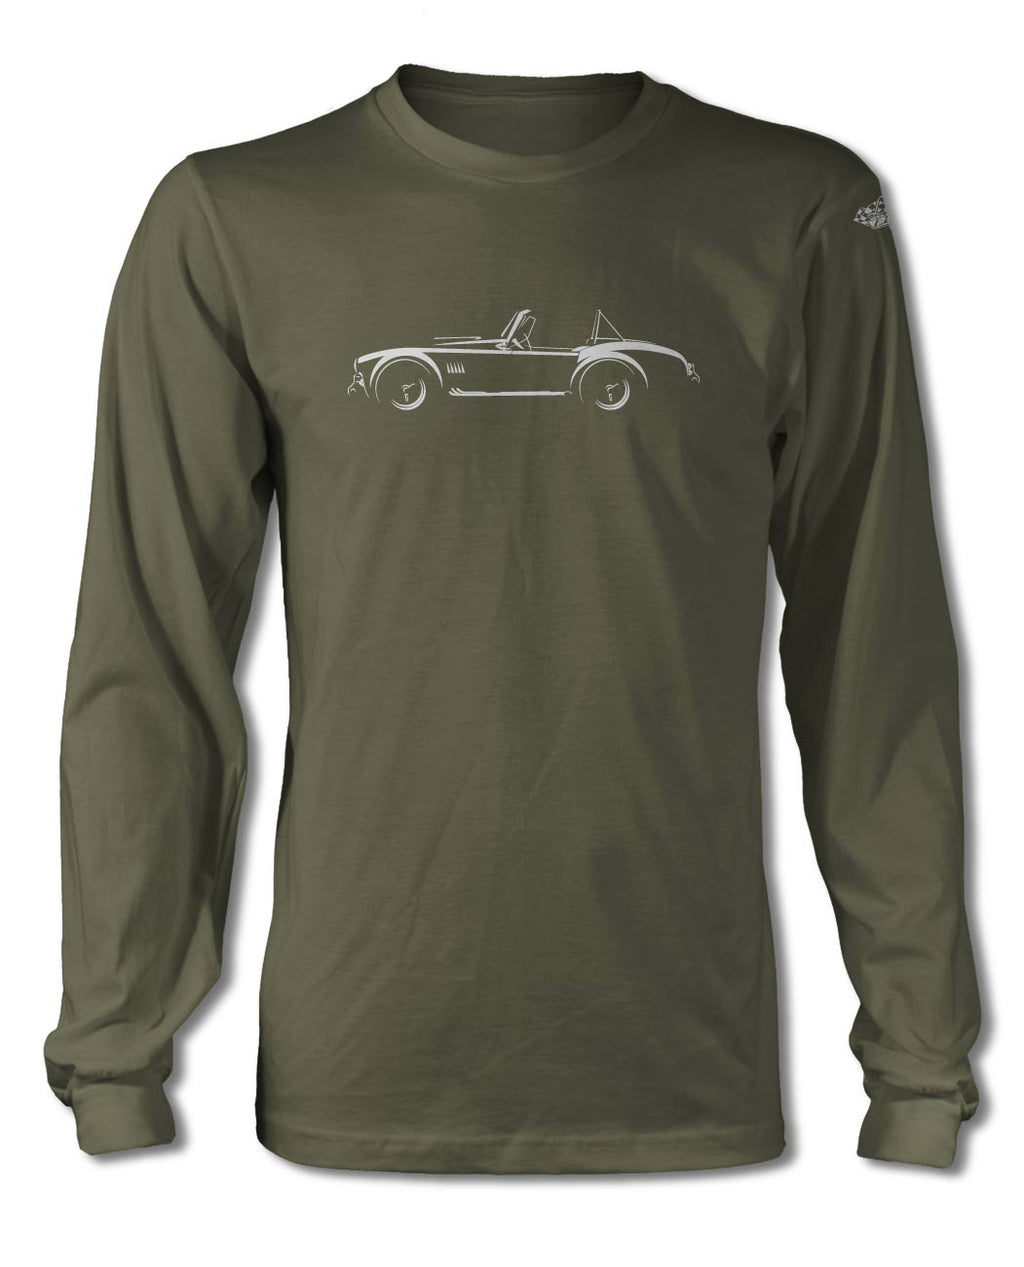 1965 AC Shelby Cobra 427 SC Art of Light T-Shirt - Long Sleeves